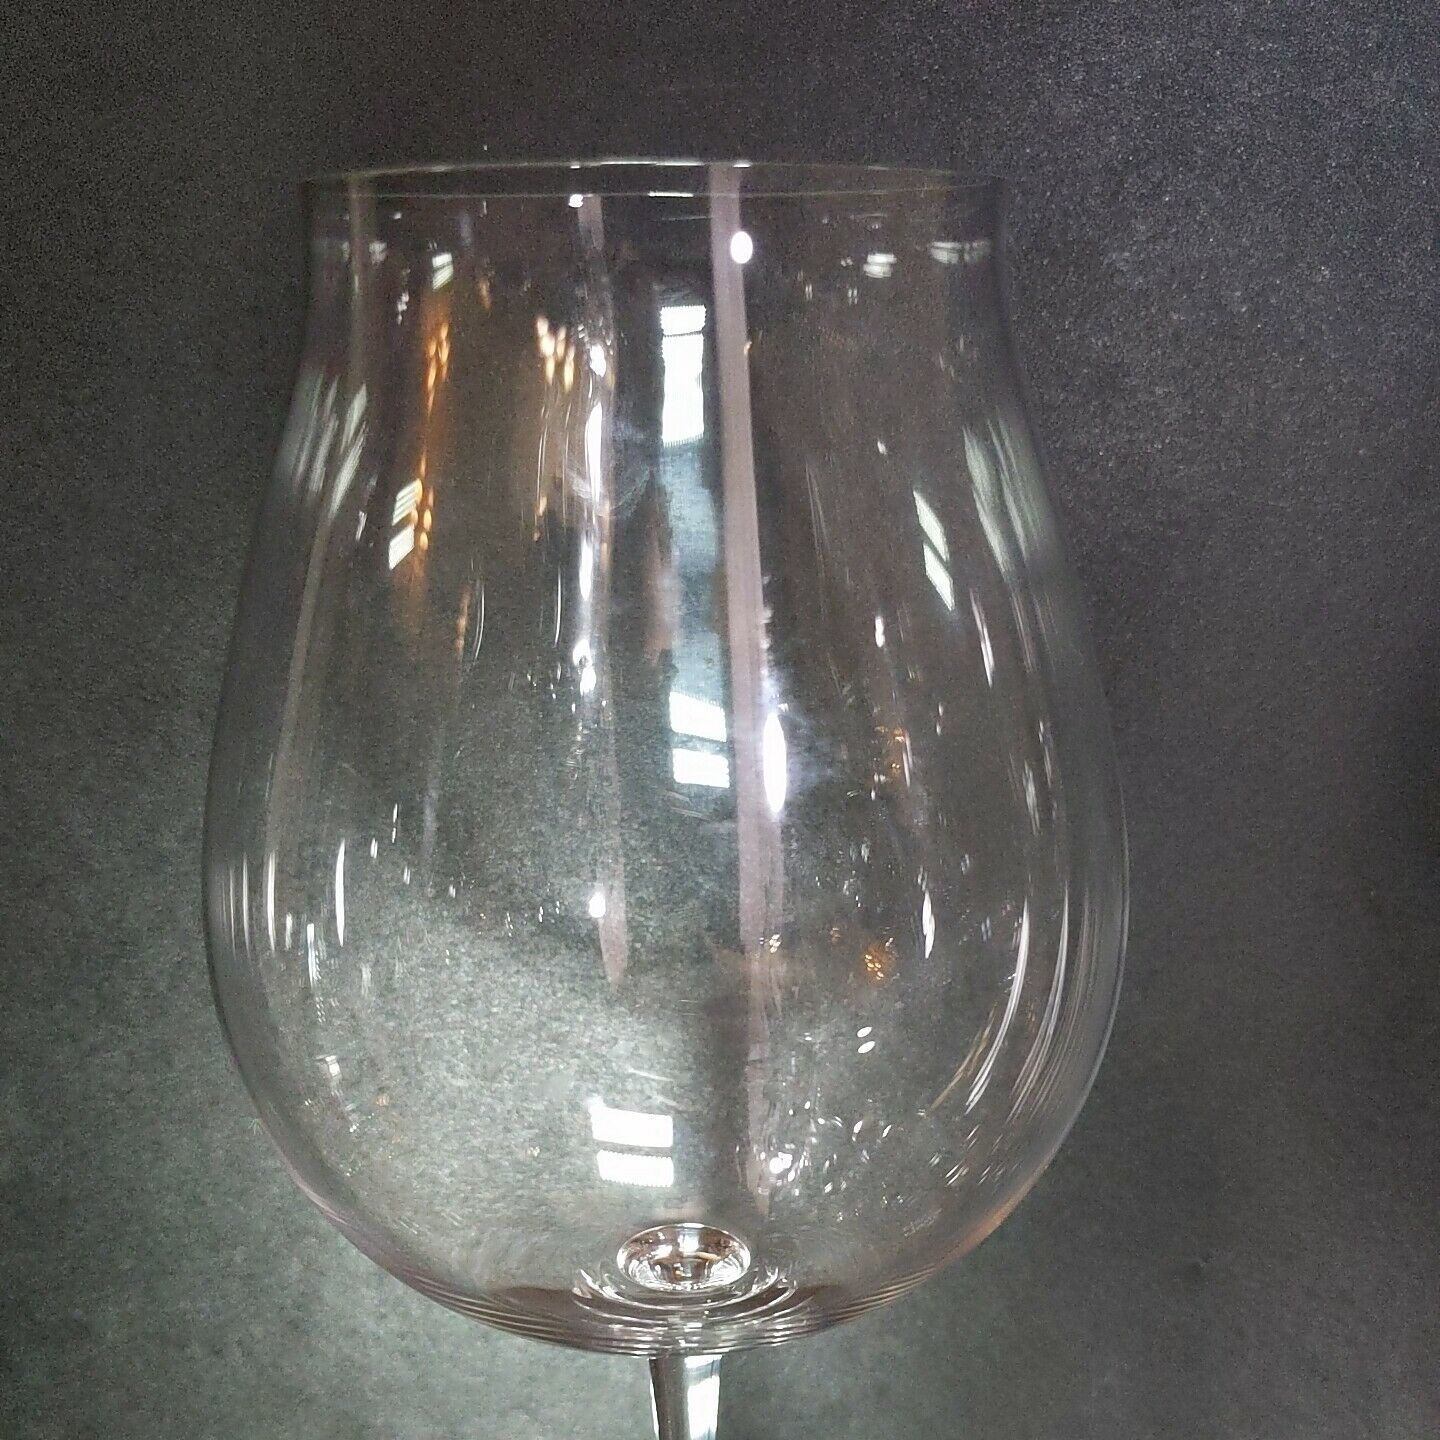 2 (Two) RIEDEL VINUM New World Pinot Noir Lead Free Crystal Wine Glasses -Signed image 3